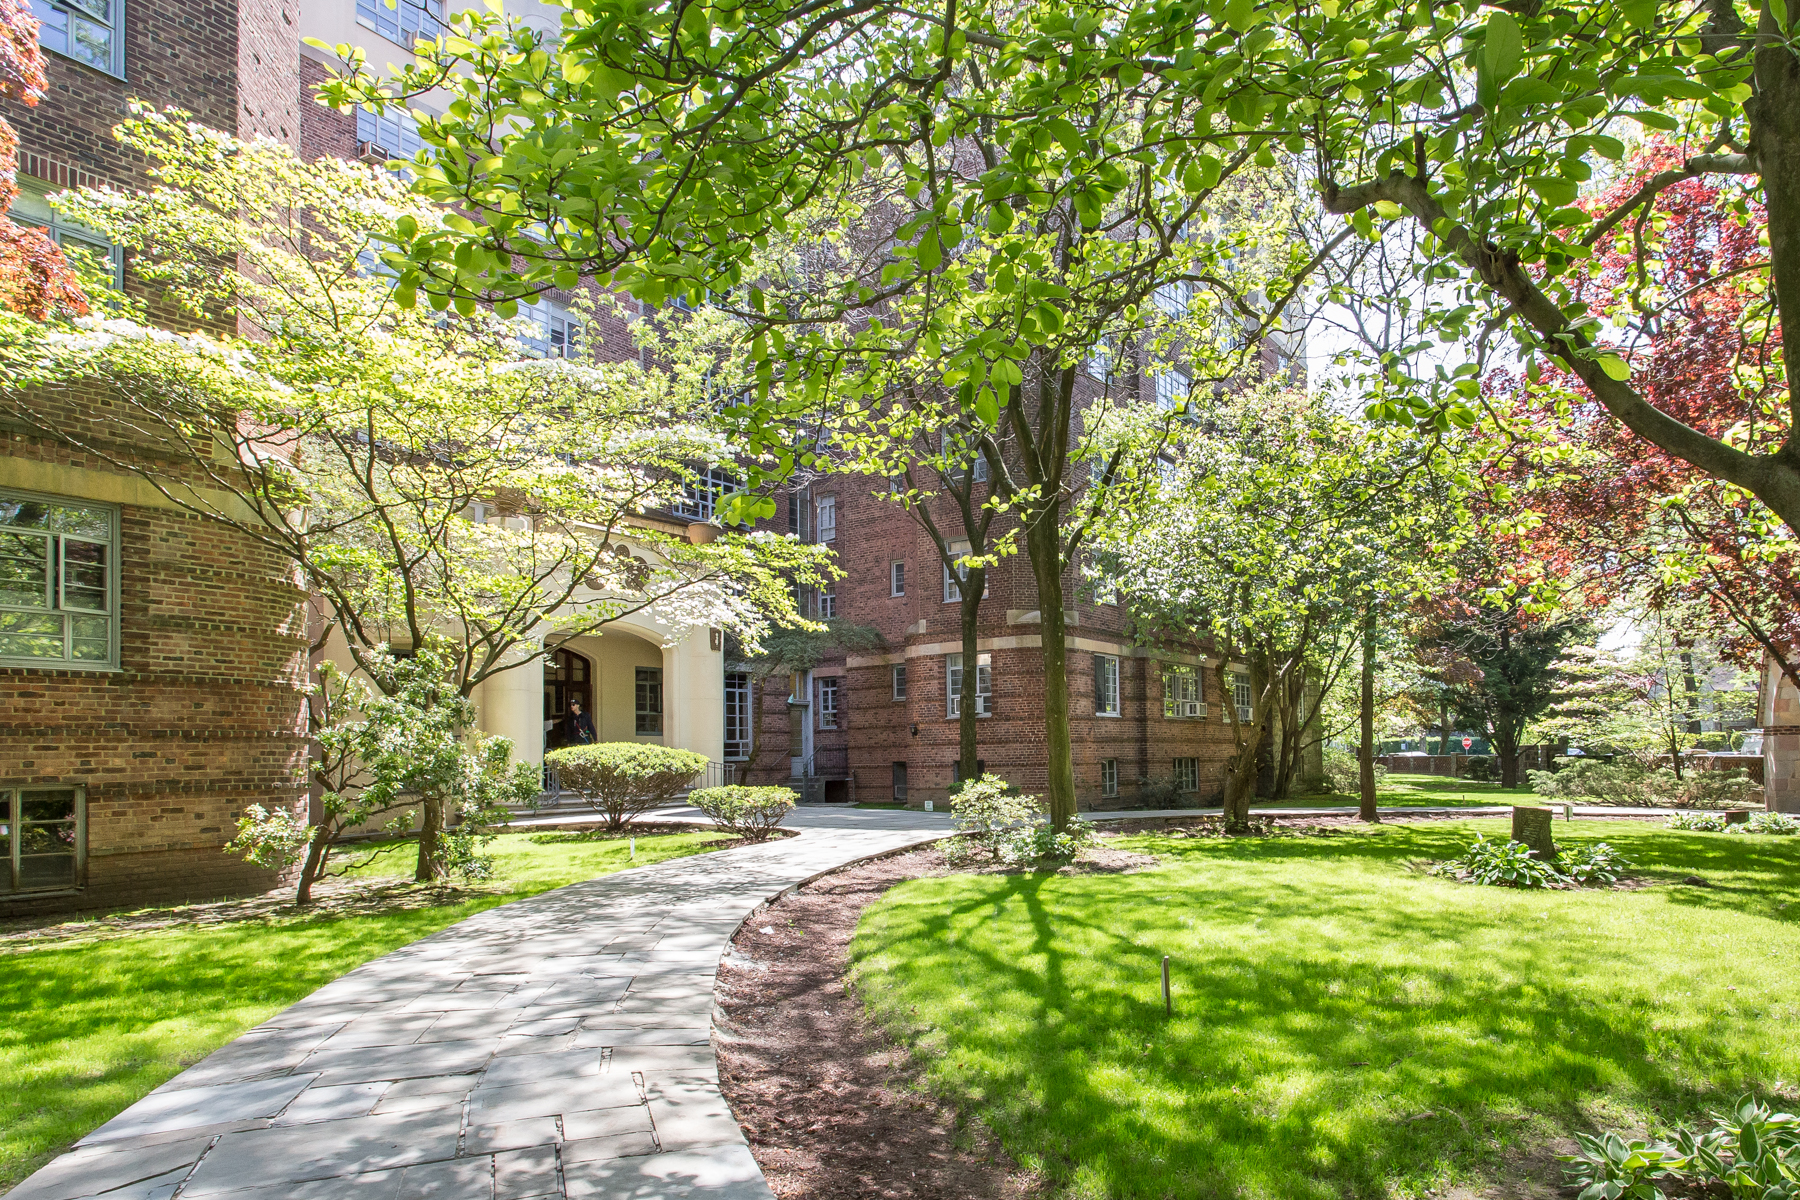 """Apartment for Rent at """"FOREST HILLS GARDENS RENOVATED TWO BEDROOM APARTMENT"""" Forest Hills, New York 11375 United States"""